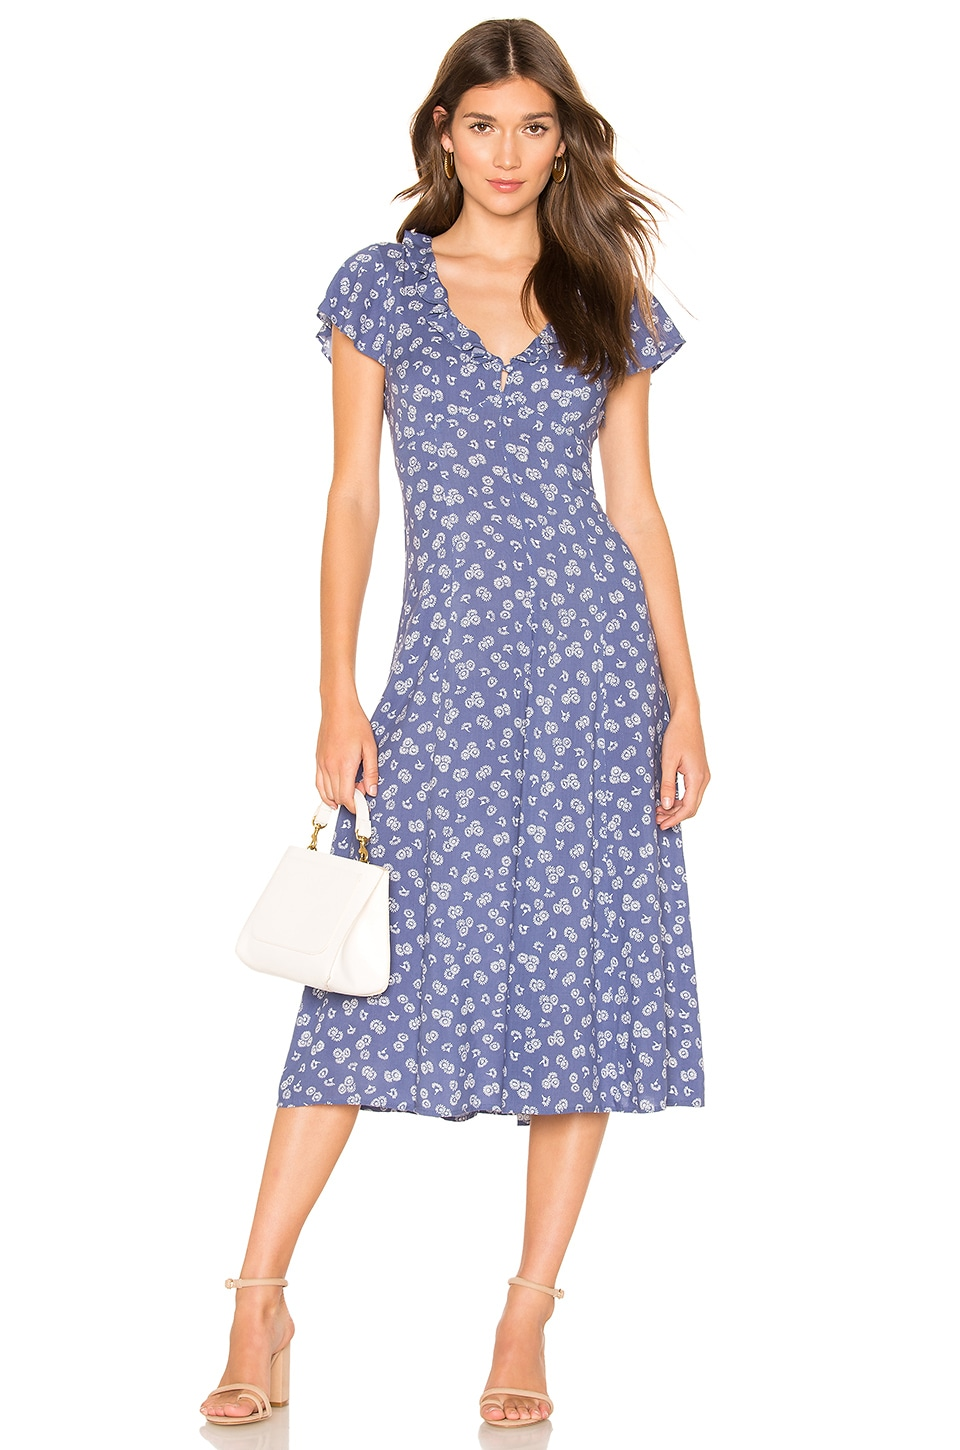 AUGUSTE Mae Devine Midi Dress in Blue